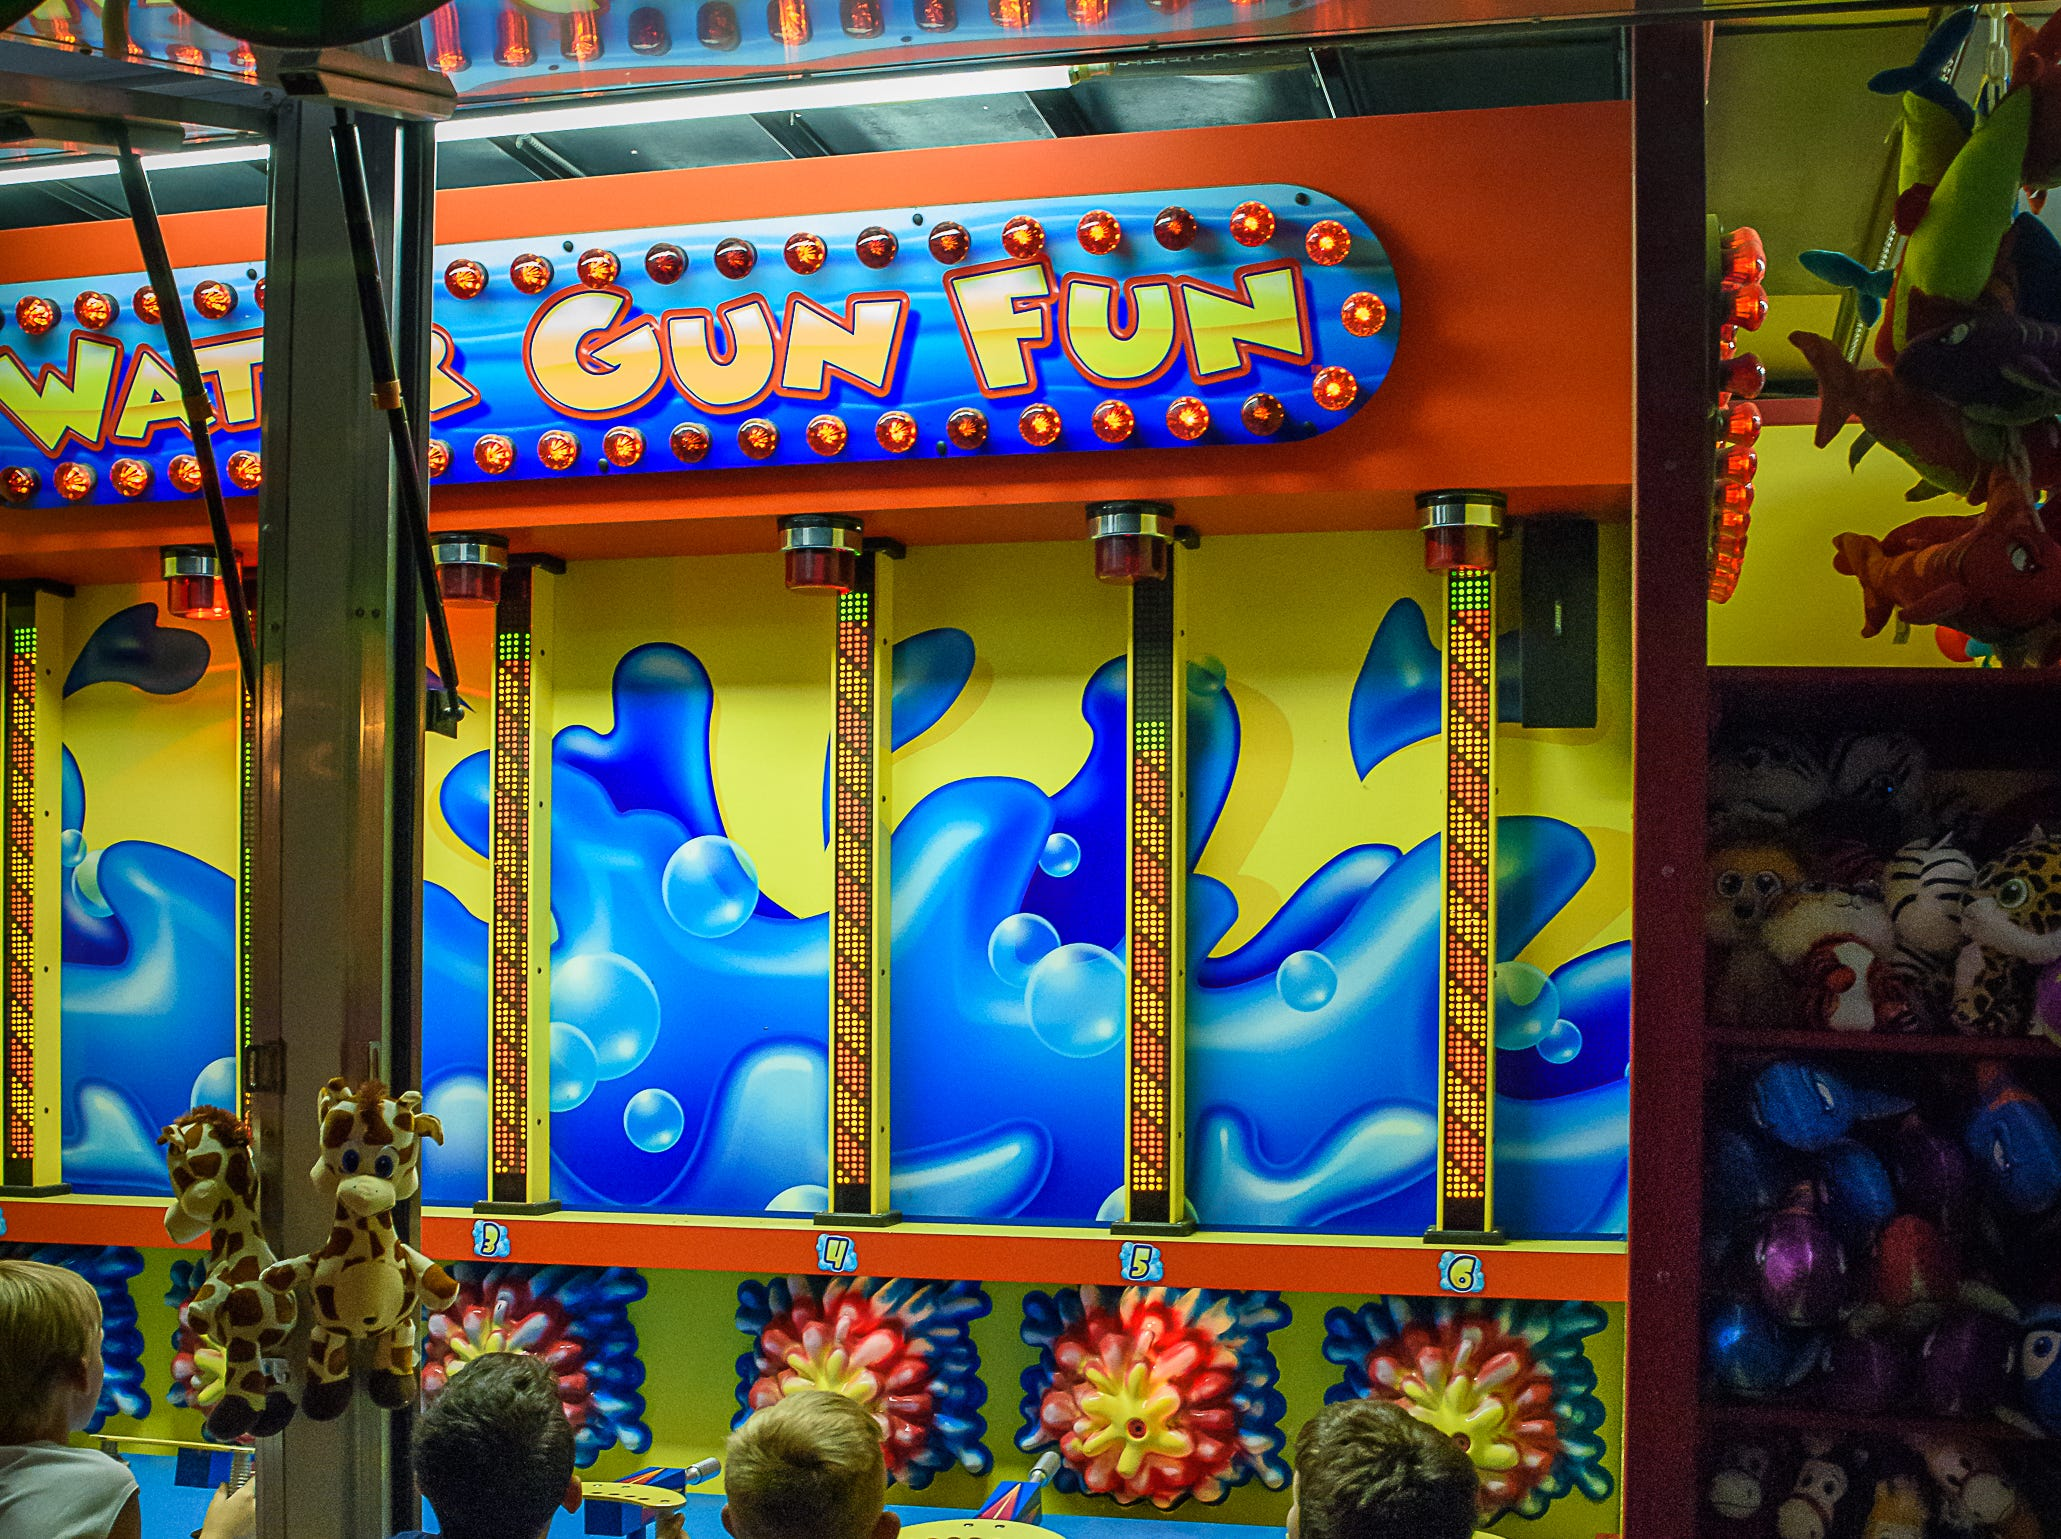 The water gun game was a popular game at the Chincoteague Fireman's Carnival.